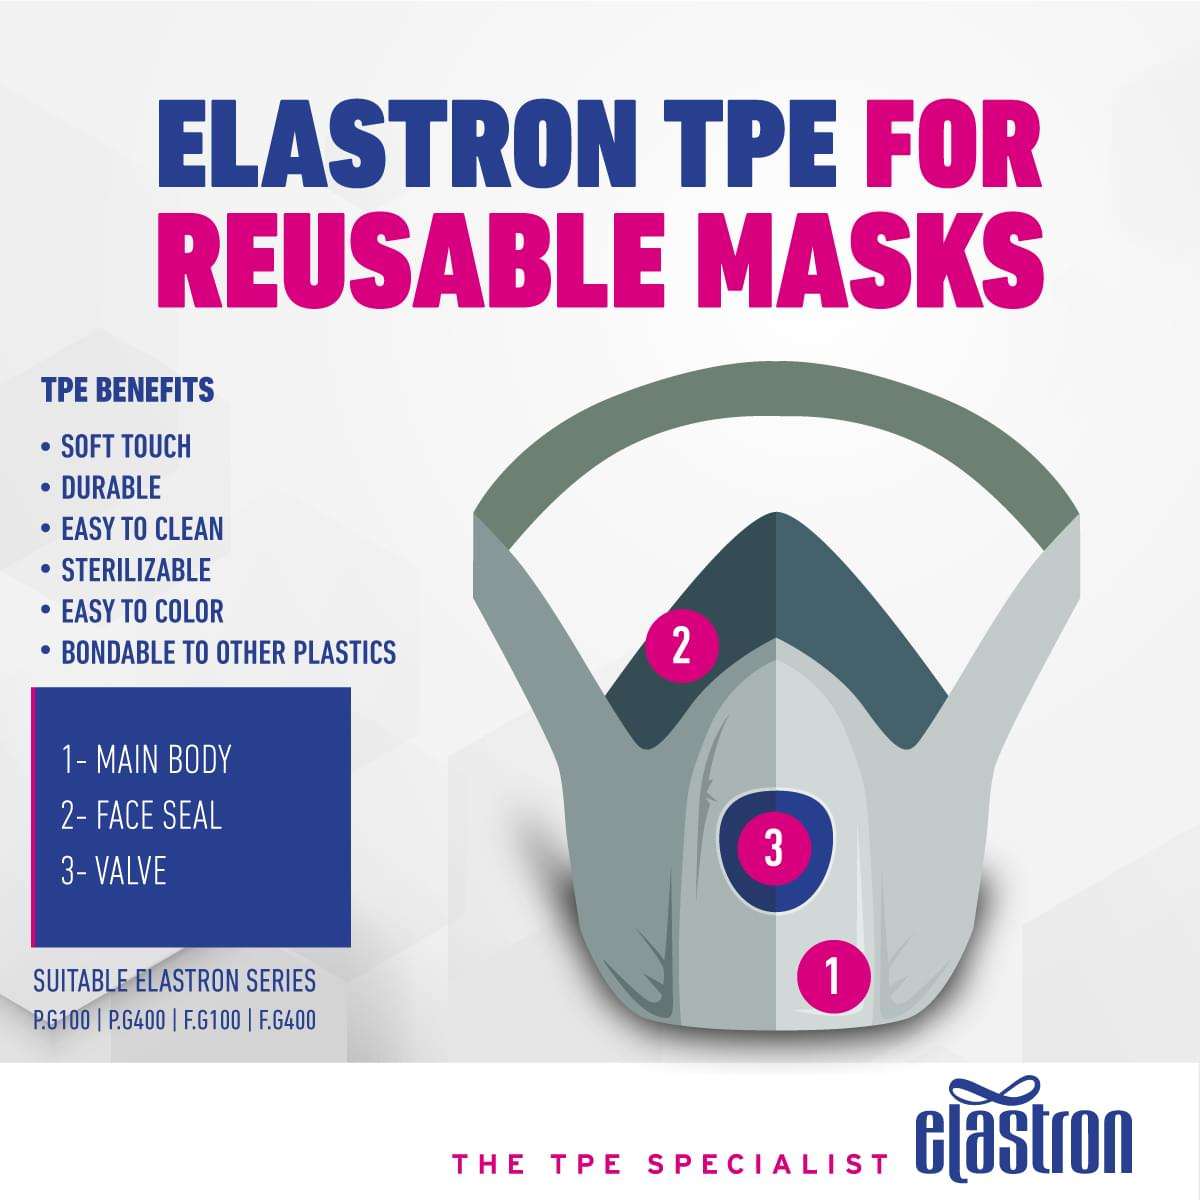 Elastron TPE for Reusable Masks – Press Release